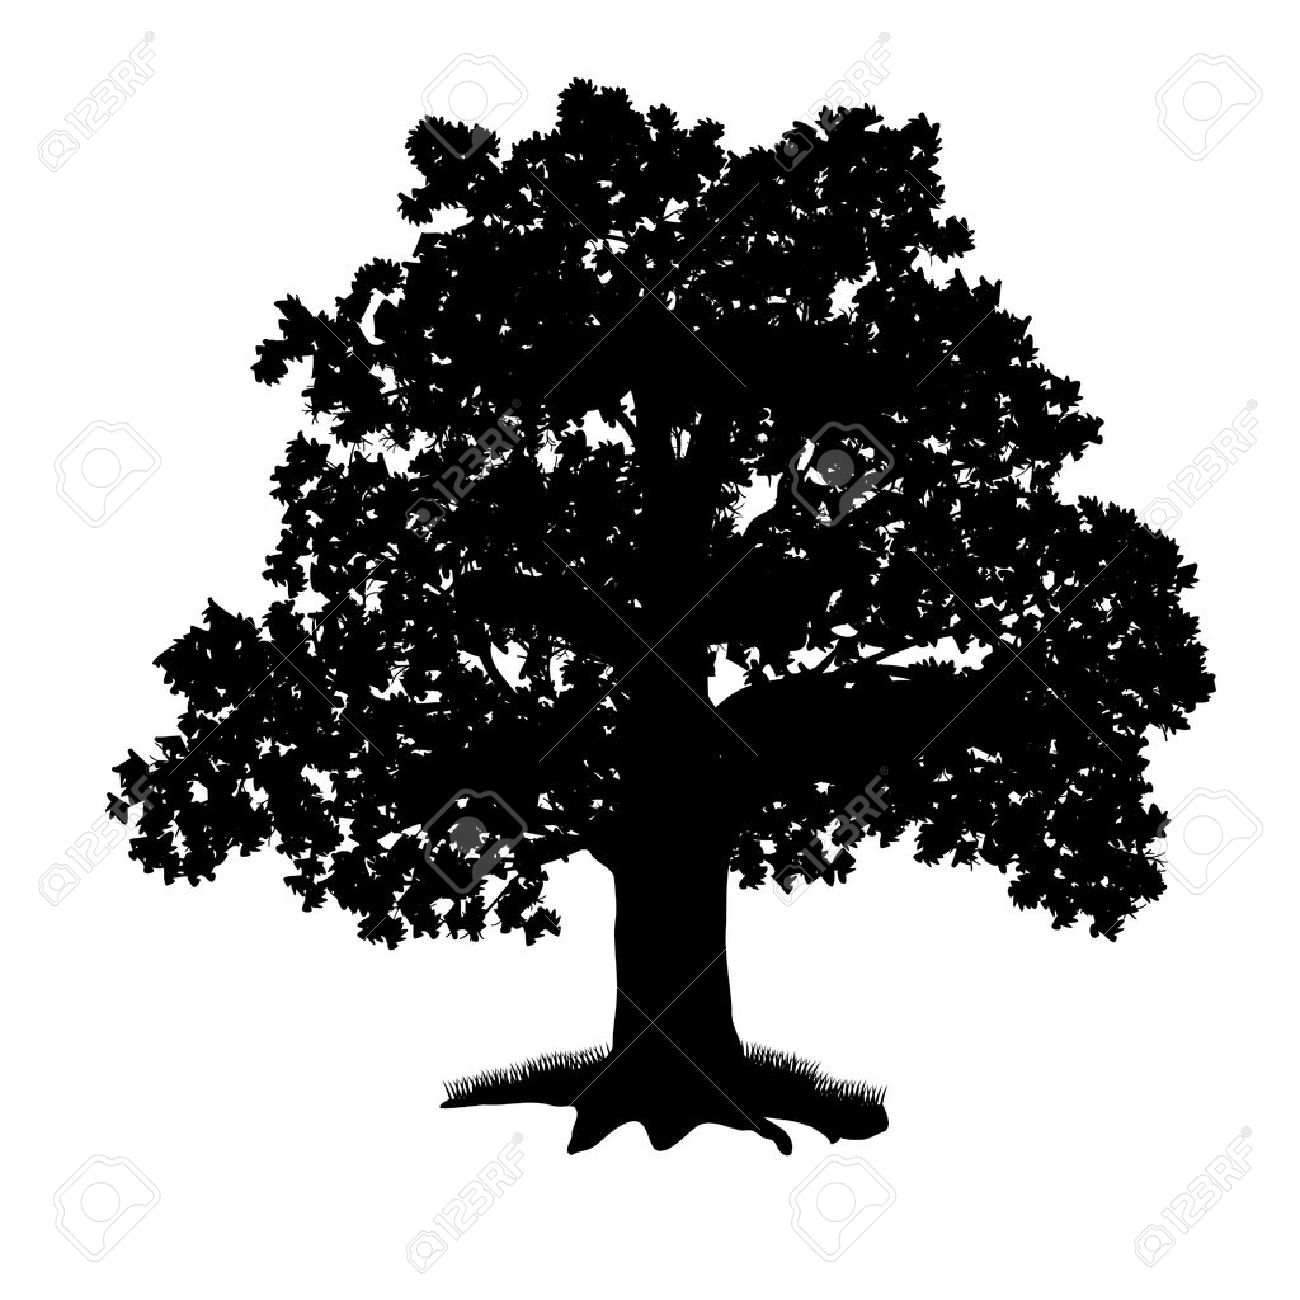 Oak Tree Silhouette Clip Art.